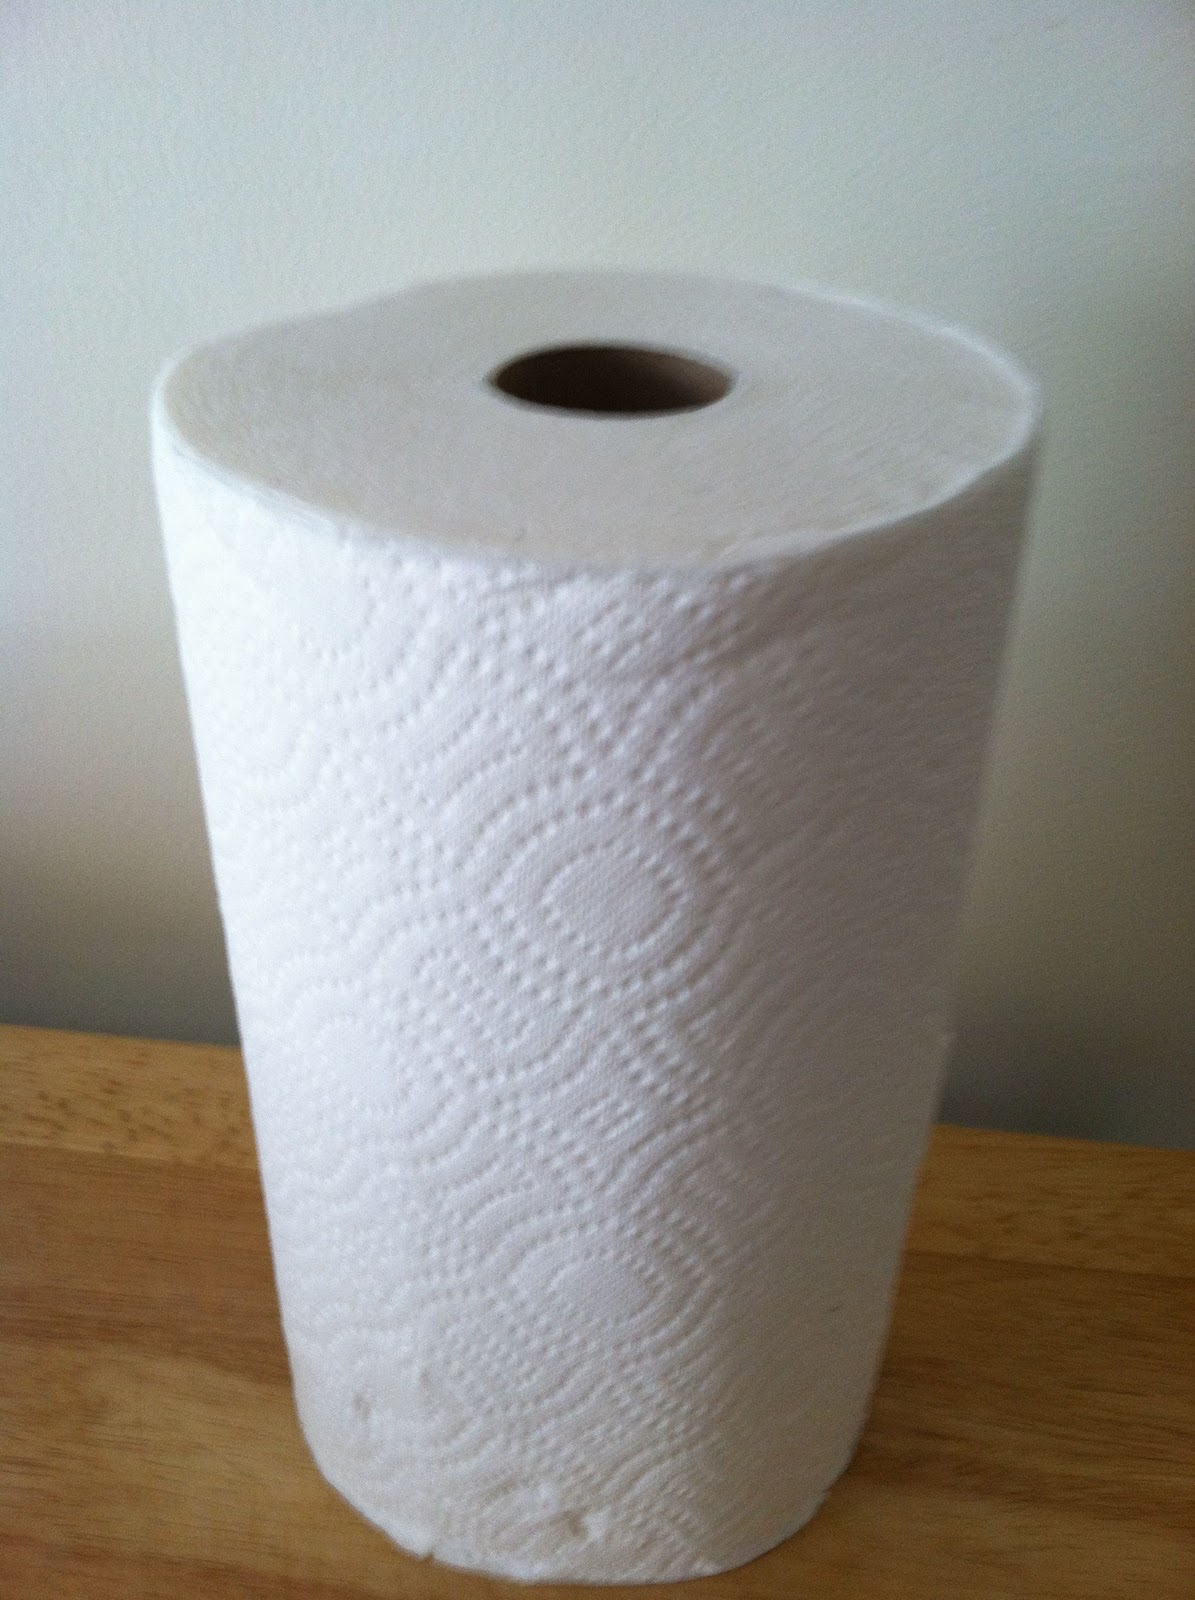 one thick paper towel)